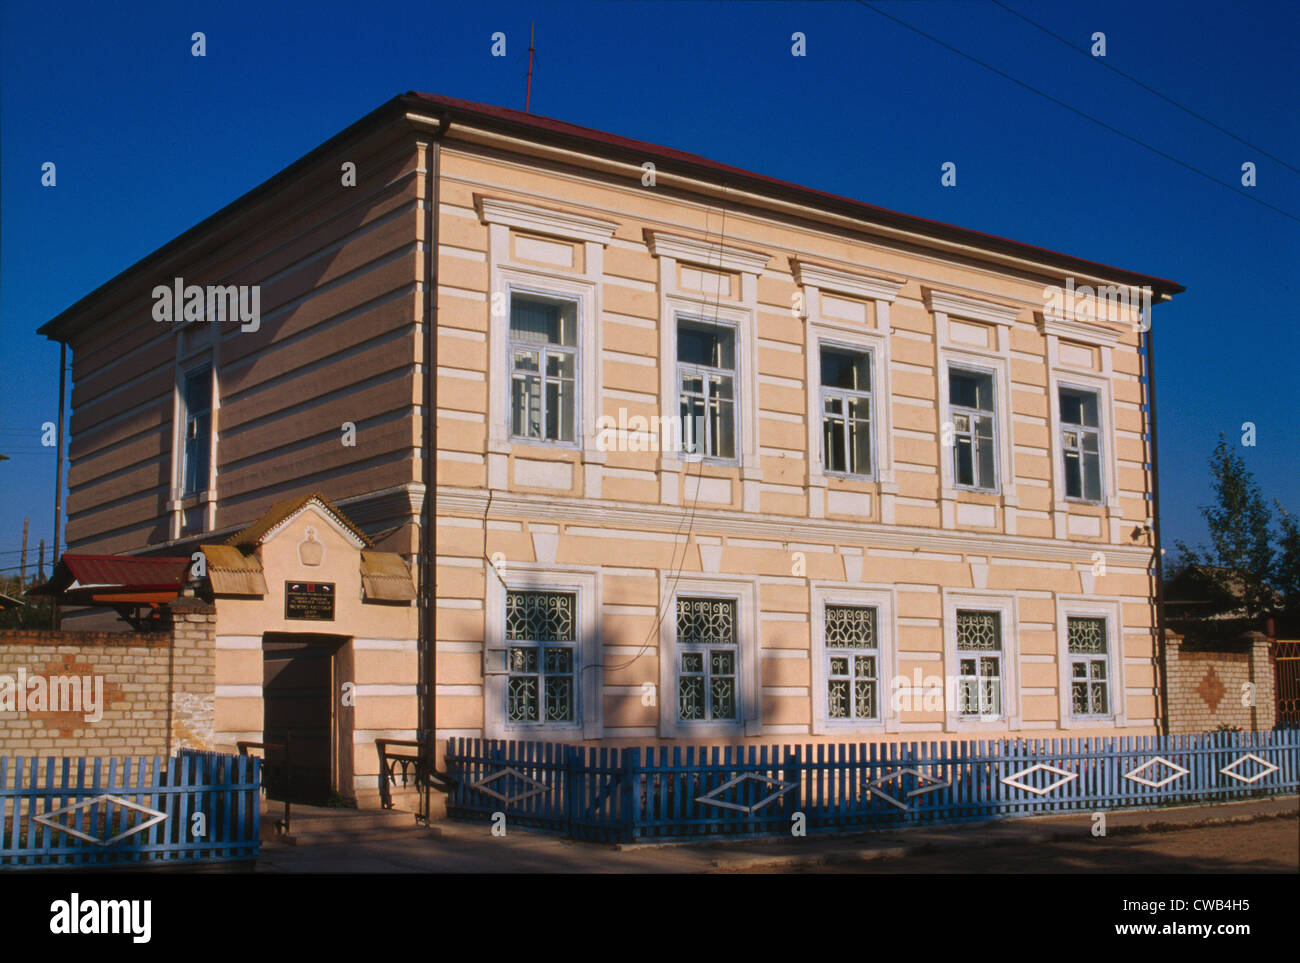 Russian post office, built mid-19th century, Nerchinsk, Russia, photograph by William Craft Brumfield, 2000. - Stock Image